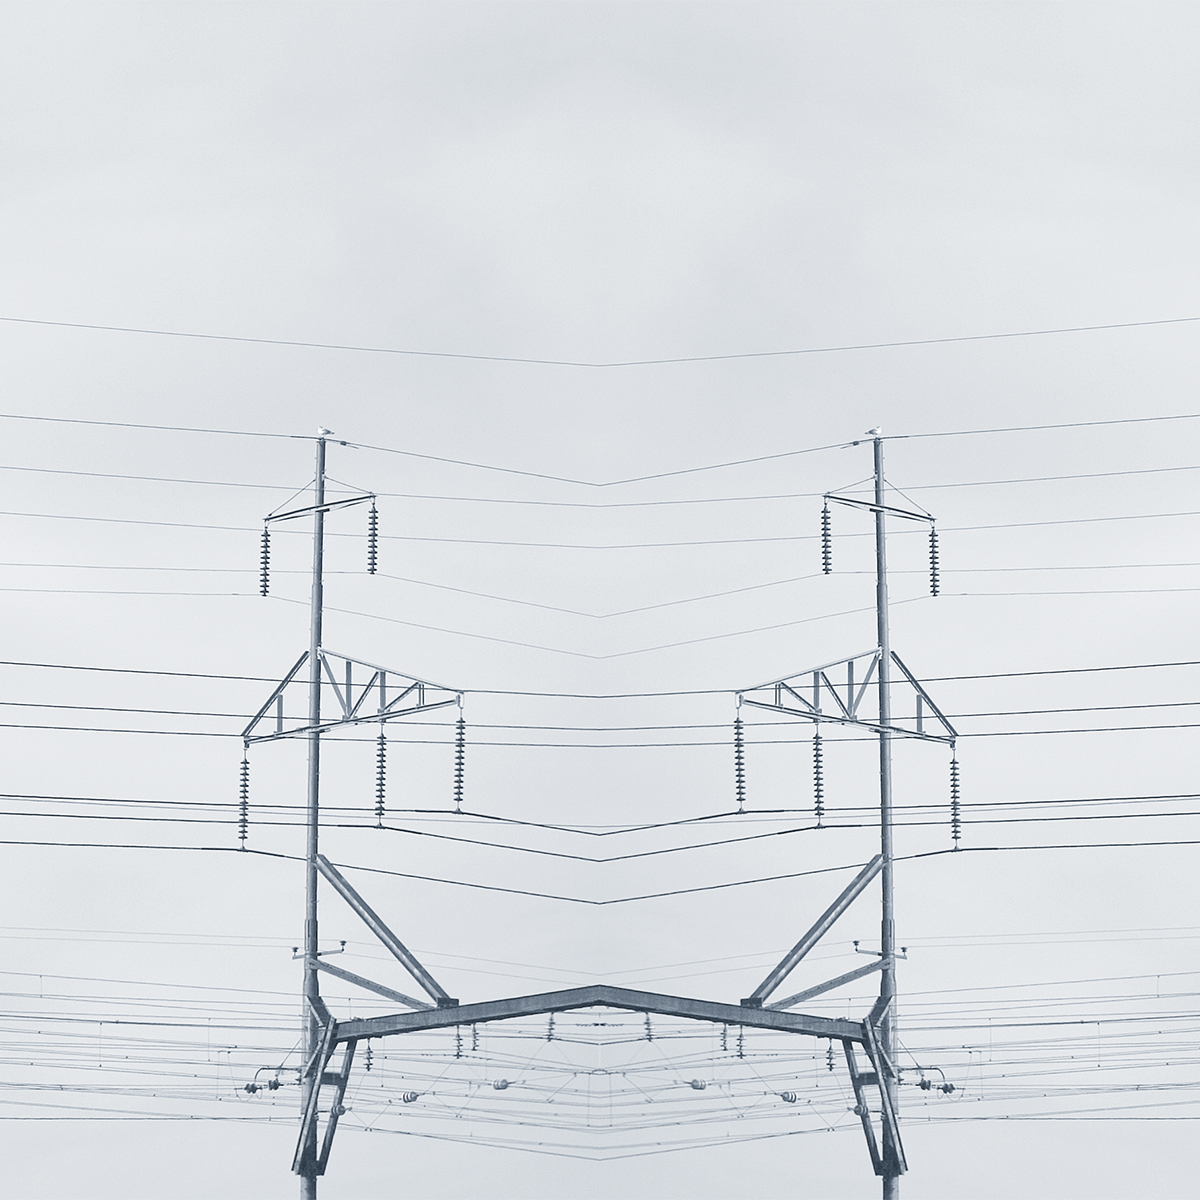 LINES & TOWERS